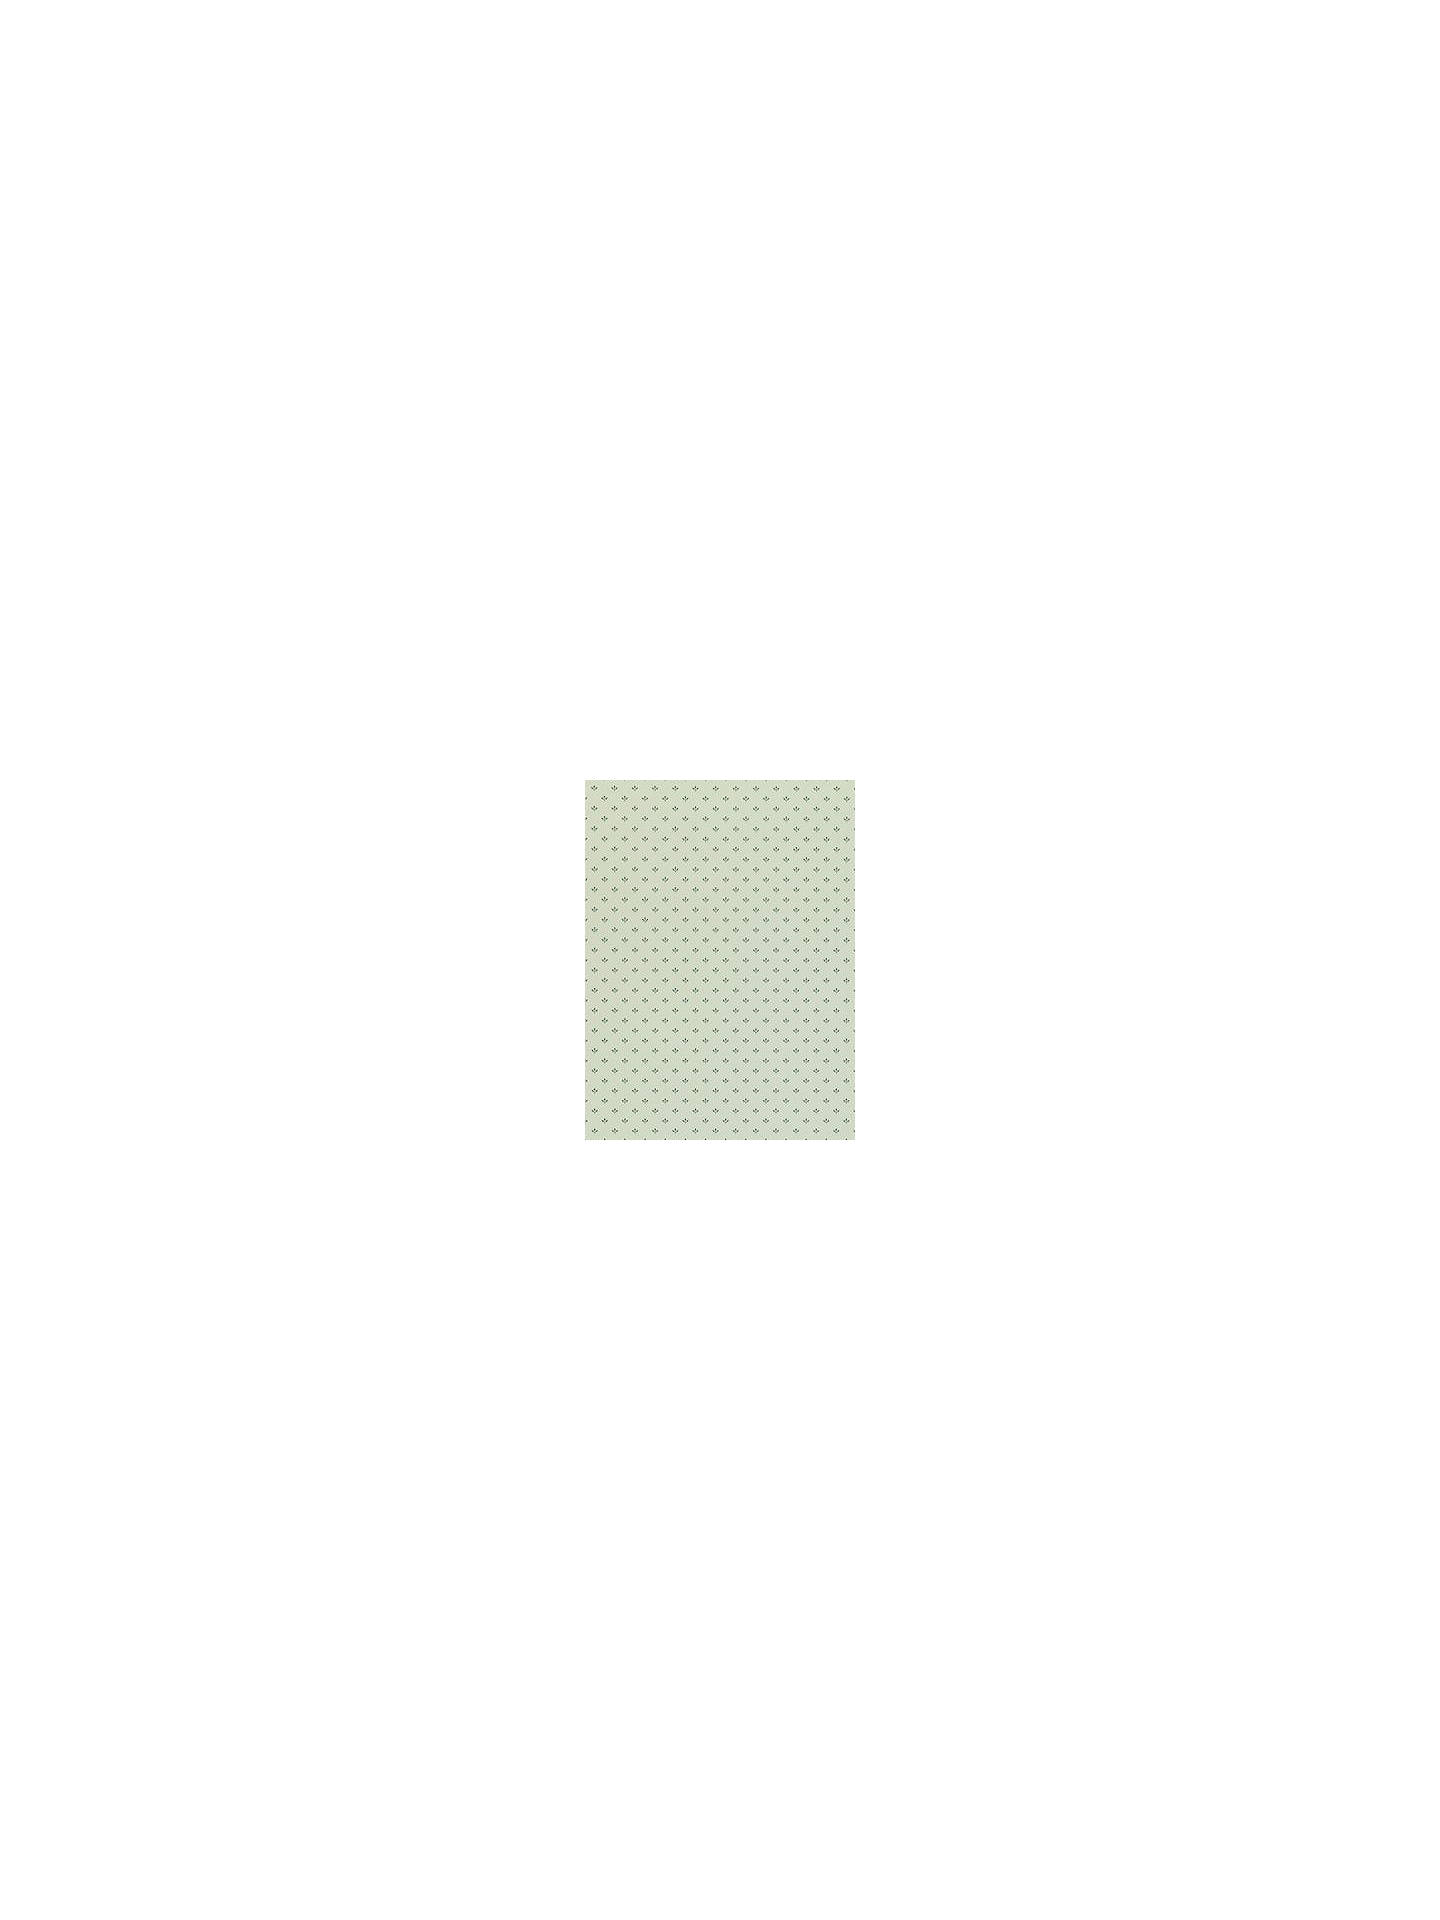 Buy Sanderson Elliot Wallpaper, Eggshell/Duck Egg, DPEMEL104 Online at johnlewis.com